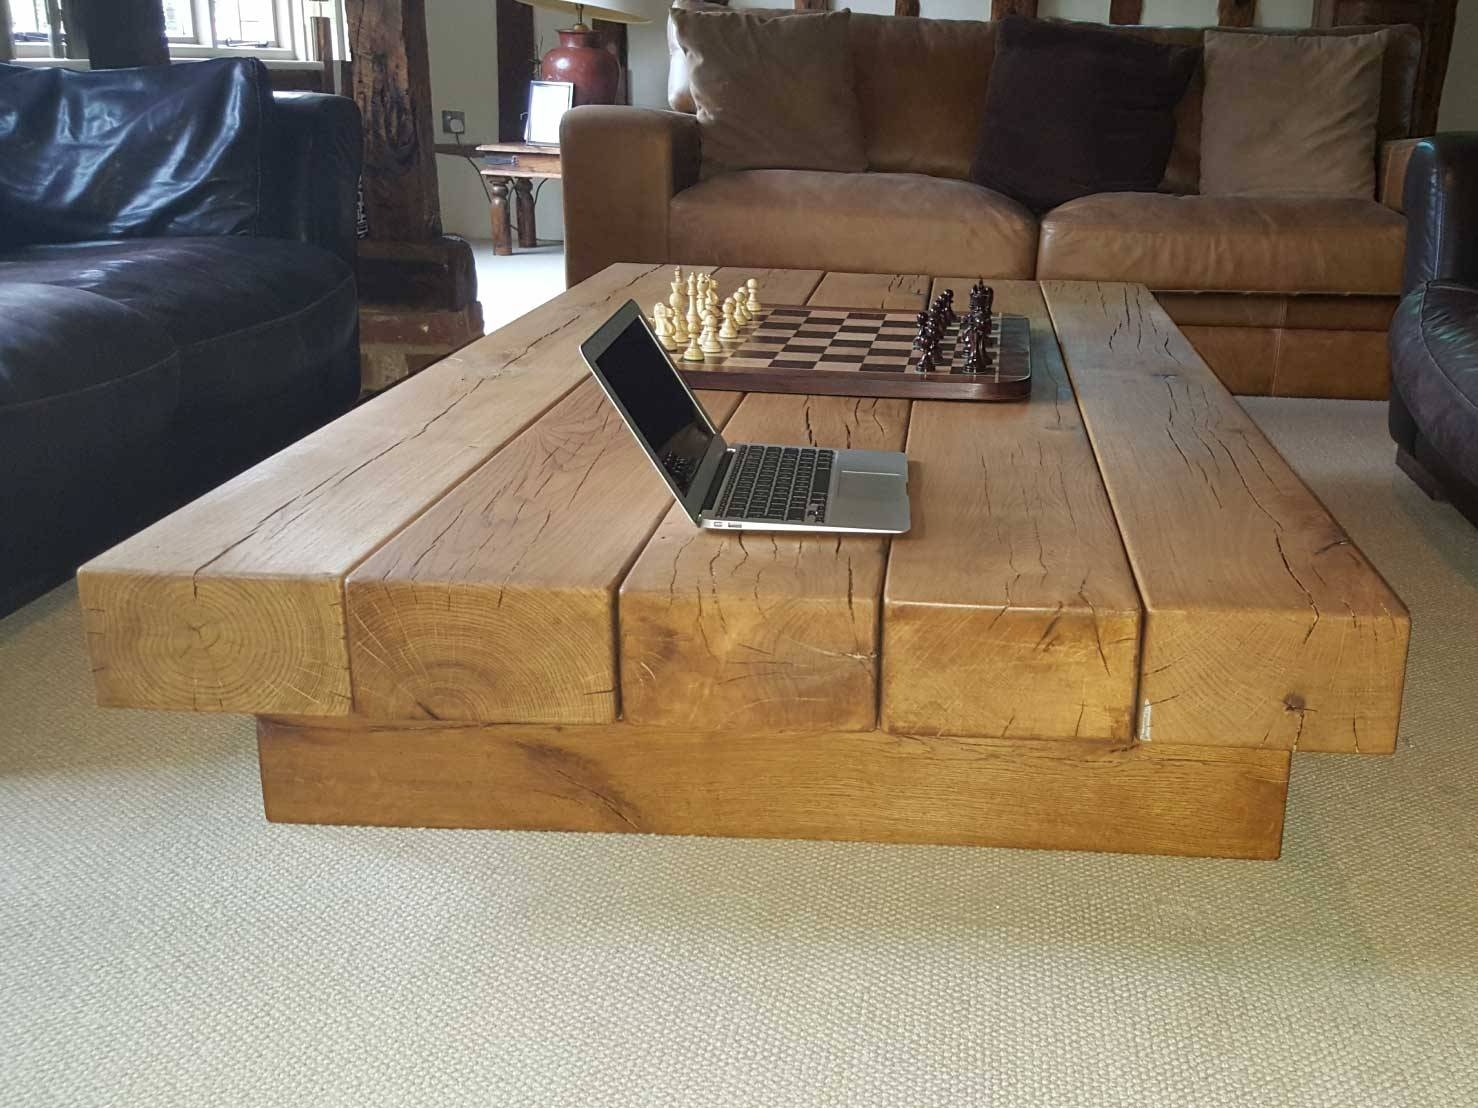 Extra Large Oak Coffee Table Project #334 | Abacus Tables intended for Oak Beam Coffee Tables (Image 6 of 15)